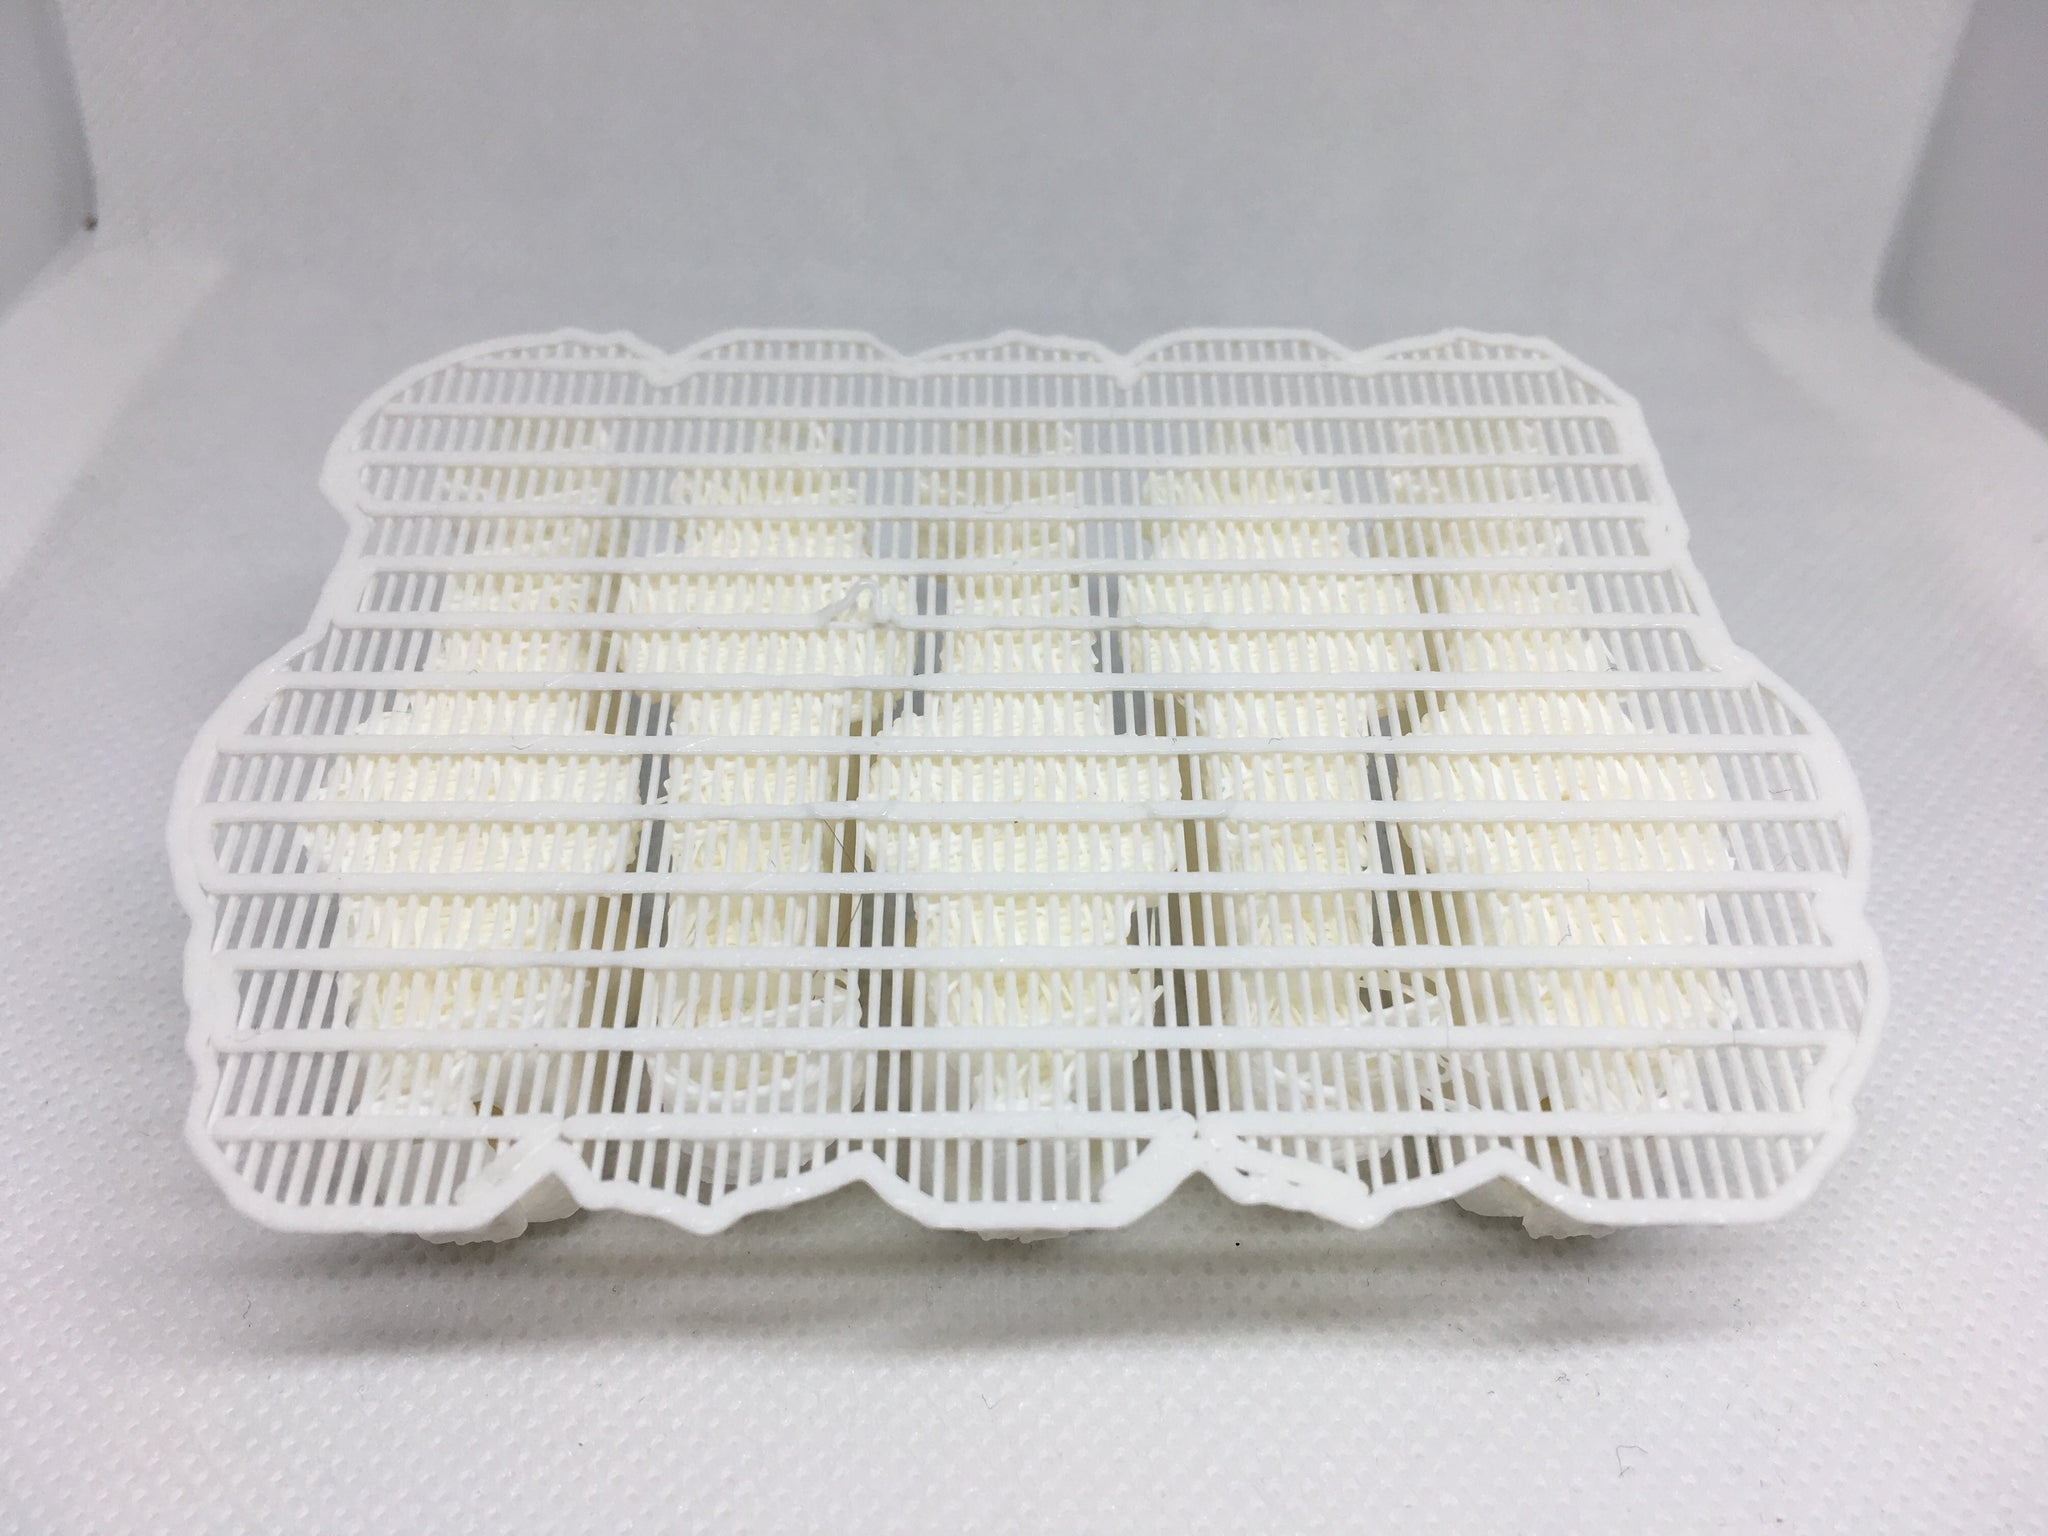 ADJUSTABLE WEIGHT LIPLESS CRANKBAIT BLANKS 3D PRINTED (WHITE)